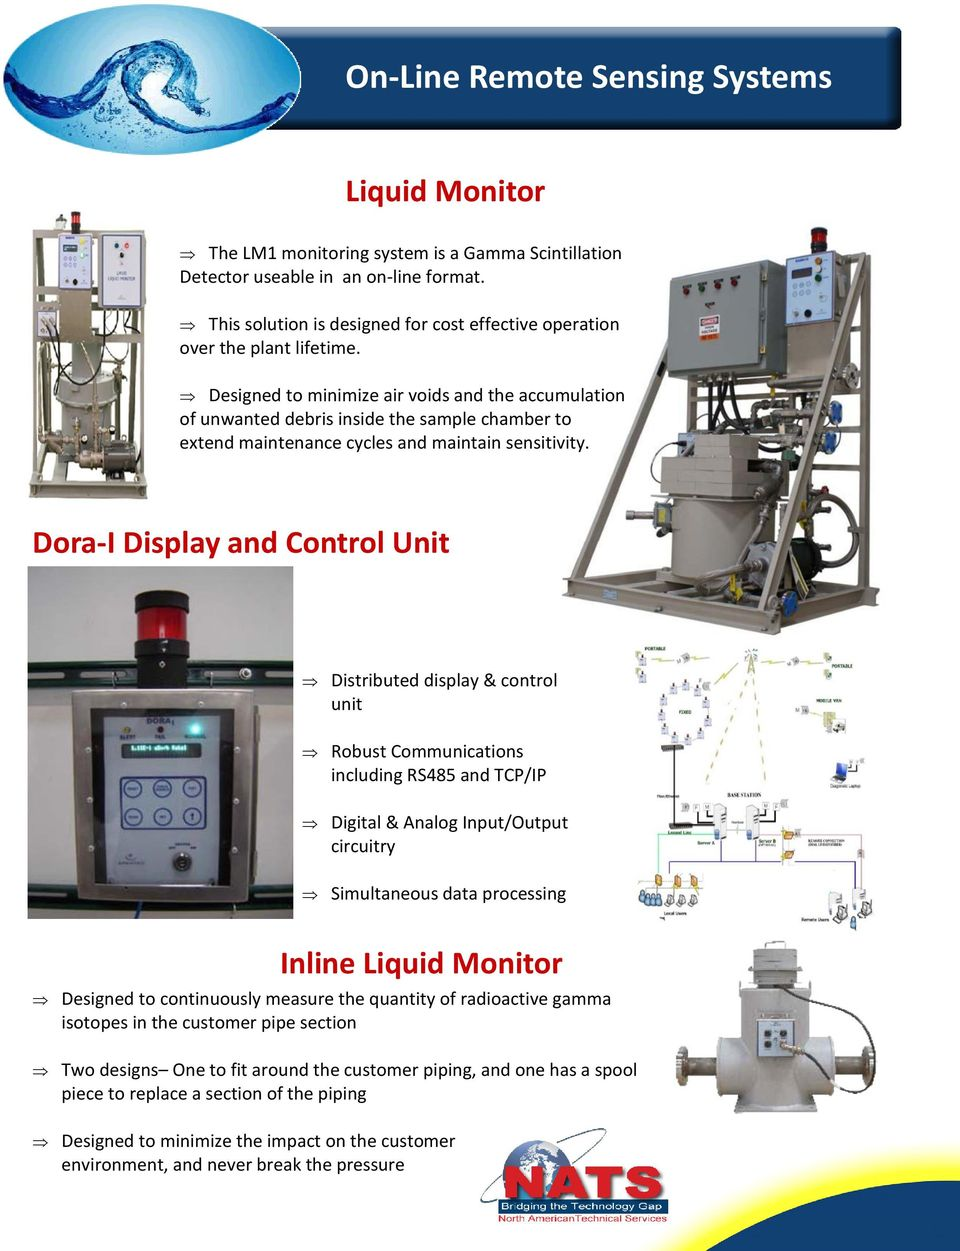 Designed to minimize air voids and the accumulation of unwanted debris inside the sample chamber to extend maintenance cycles and maintain sensitivity.